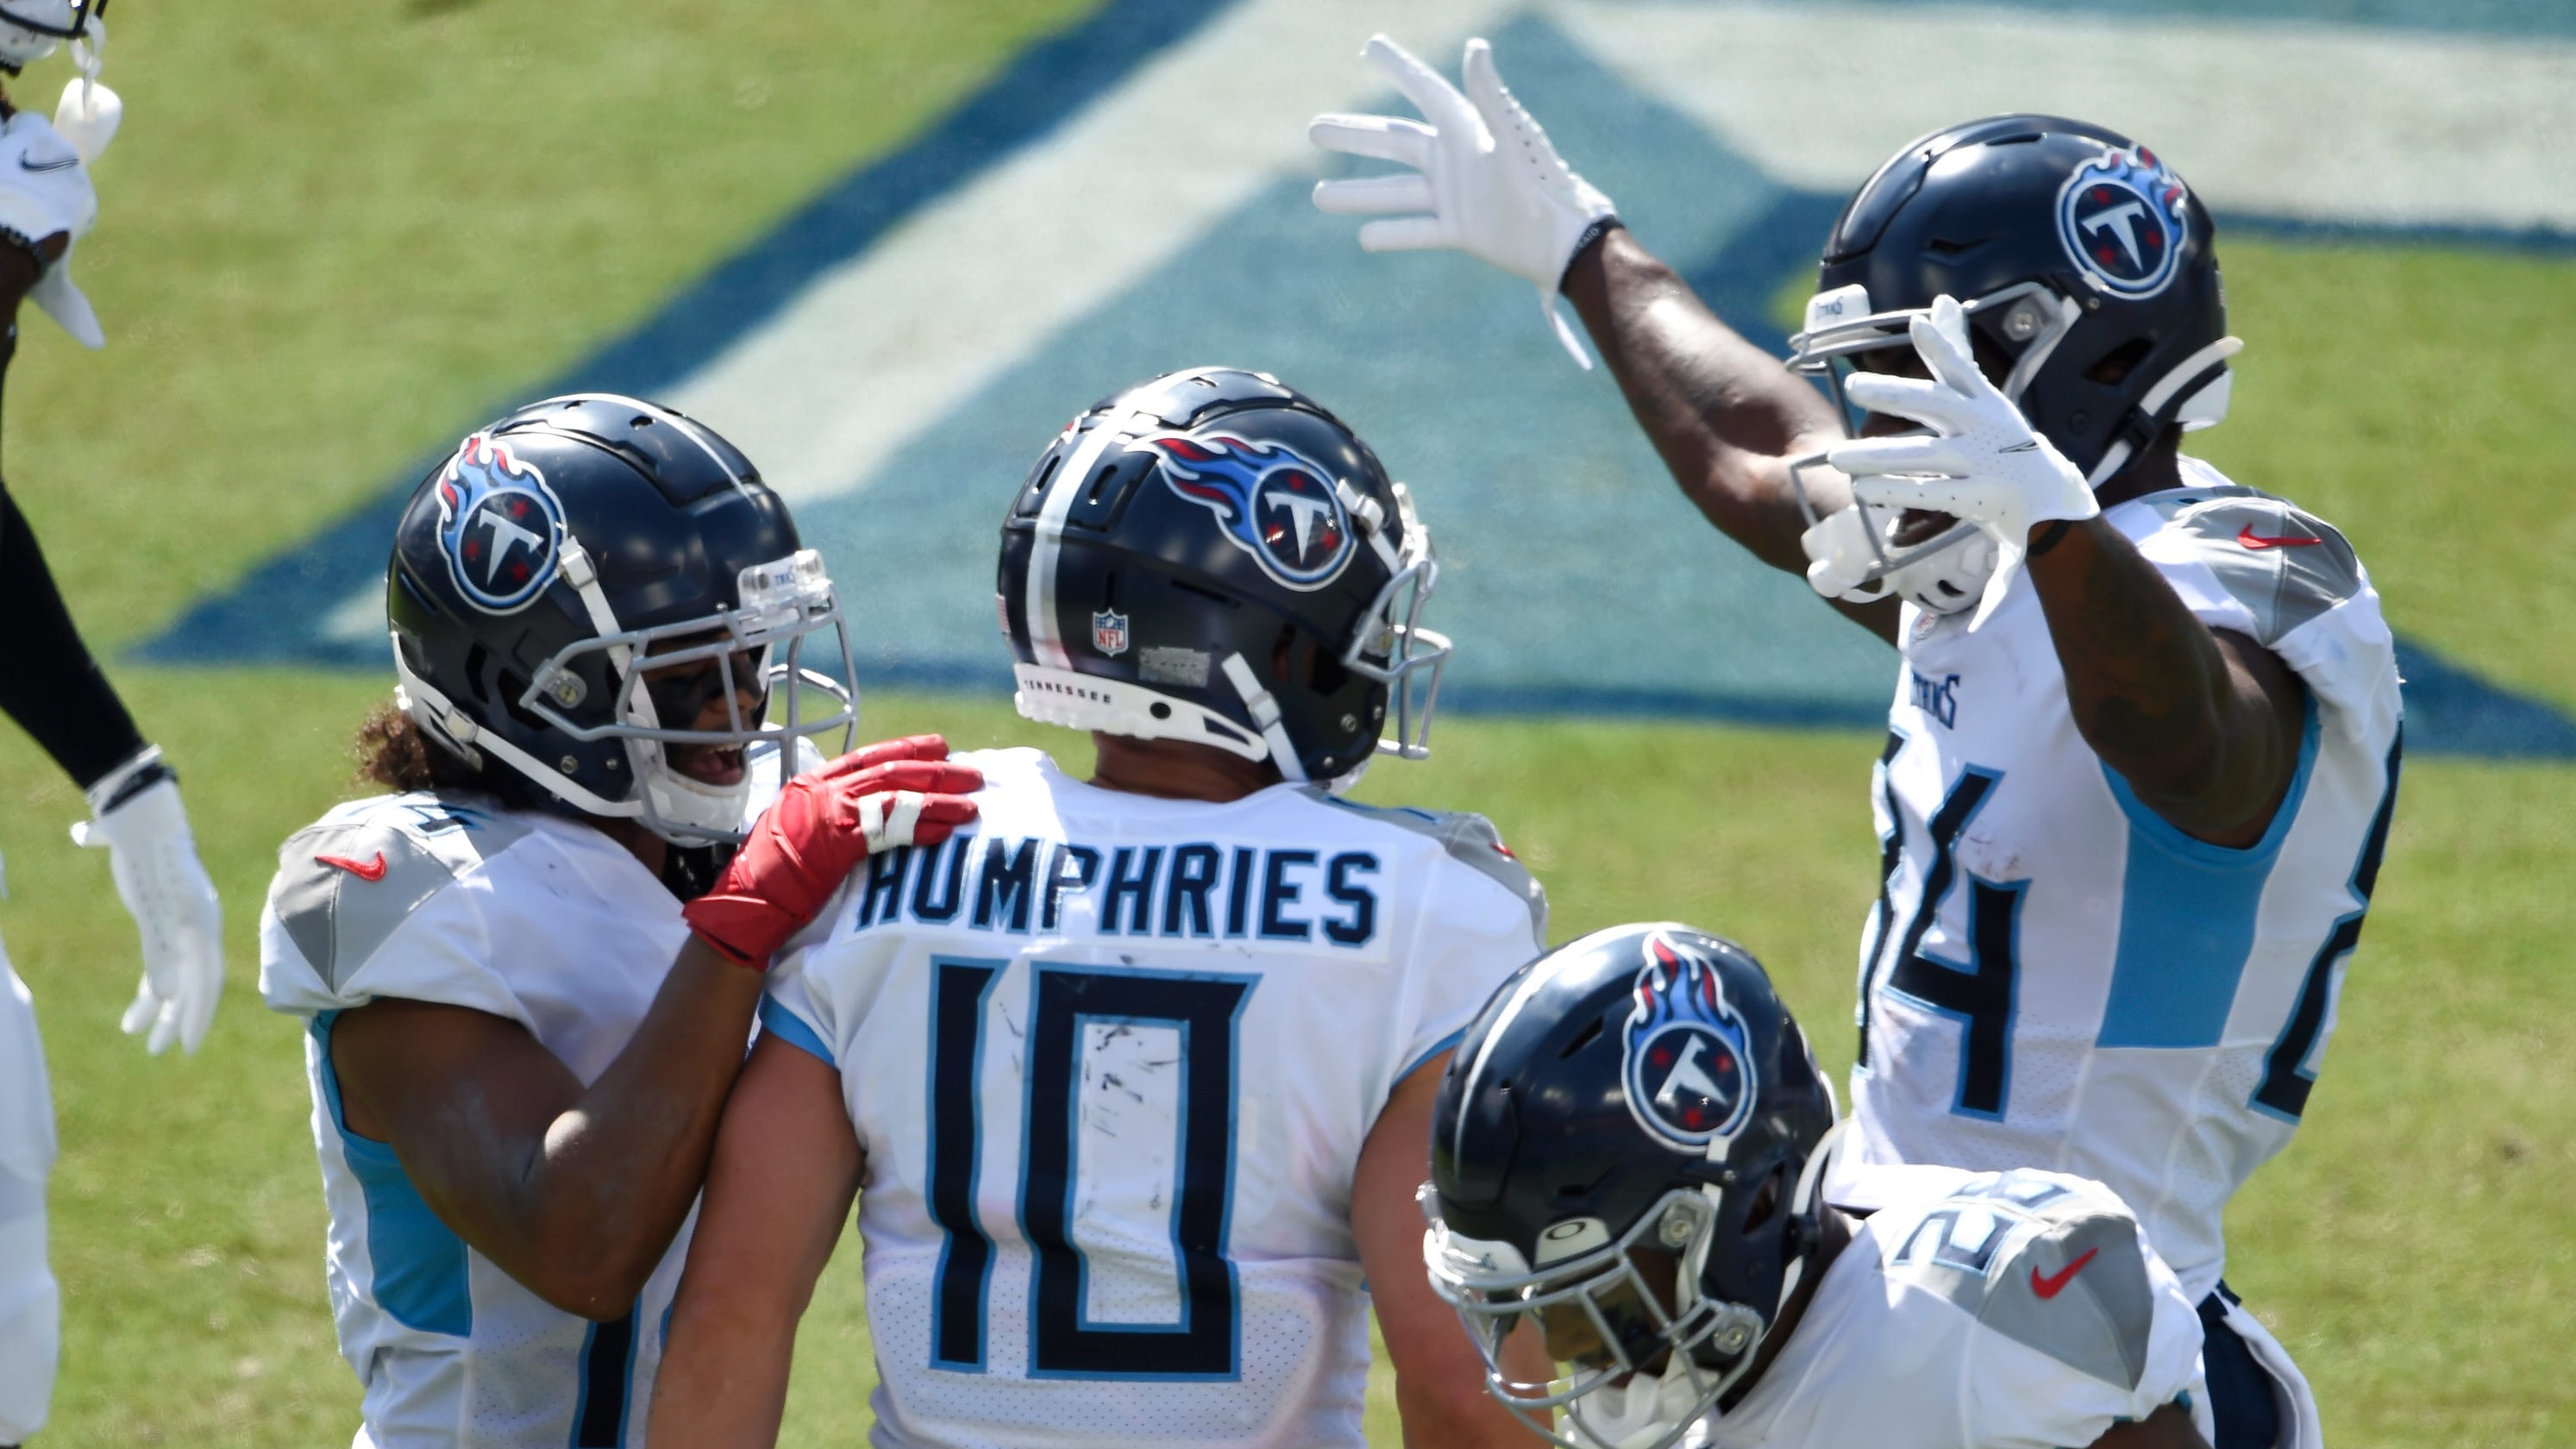 Good show, bad defense as Titans outscore Jaguars to improve to 2-0 | Estes